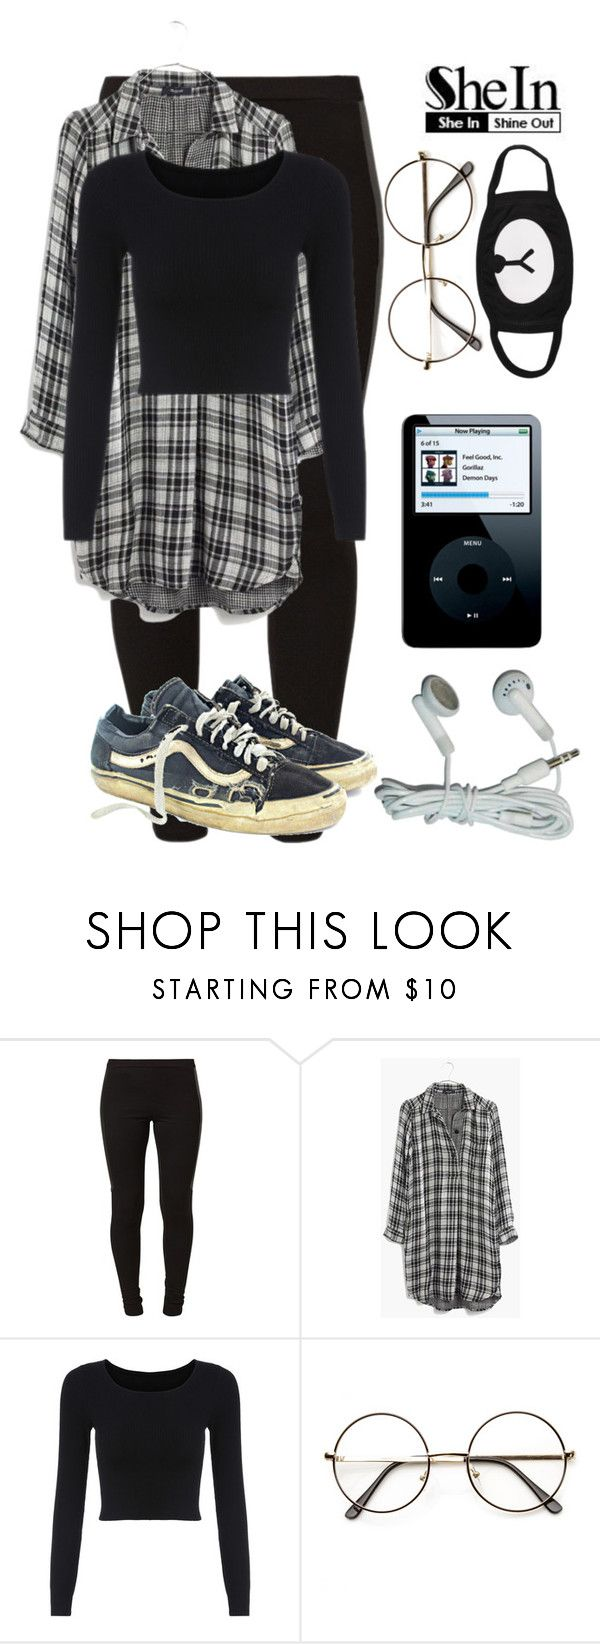 """Sin título #888"" by jessy-693 ❤ liked on Polyvore featuring Vero Moda, Madewell, Vans and ZeroUV"